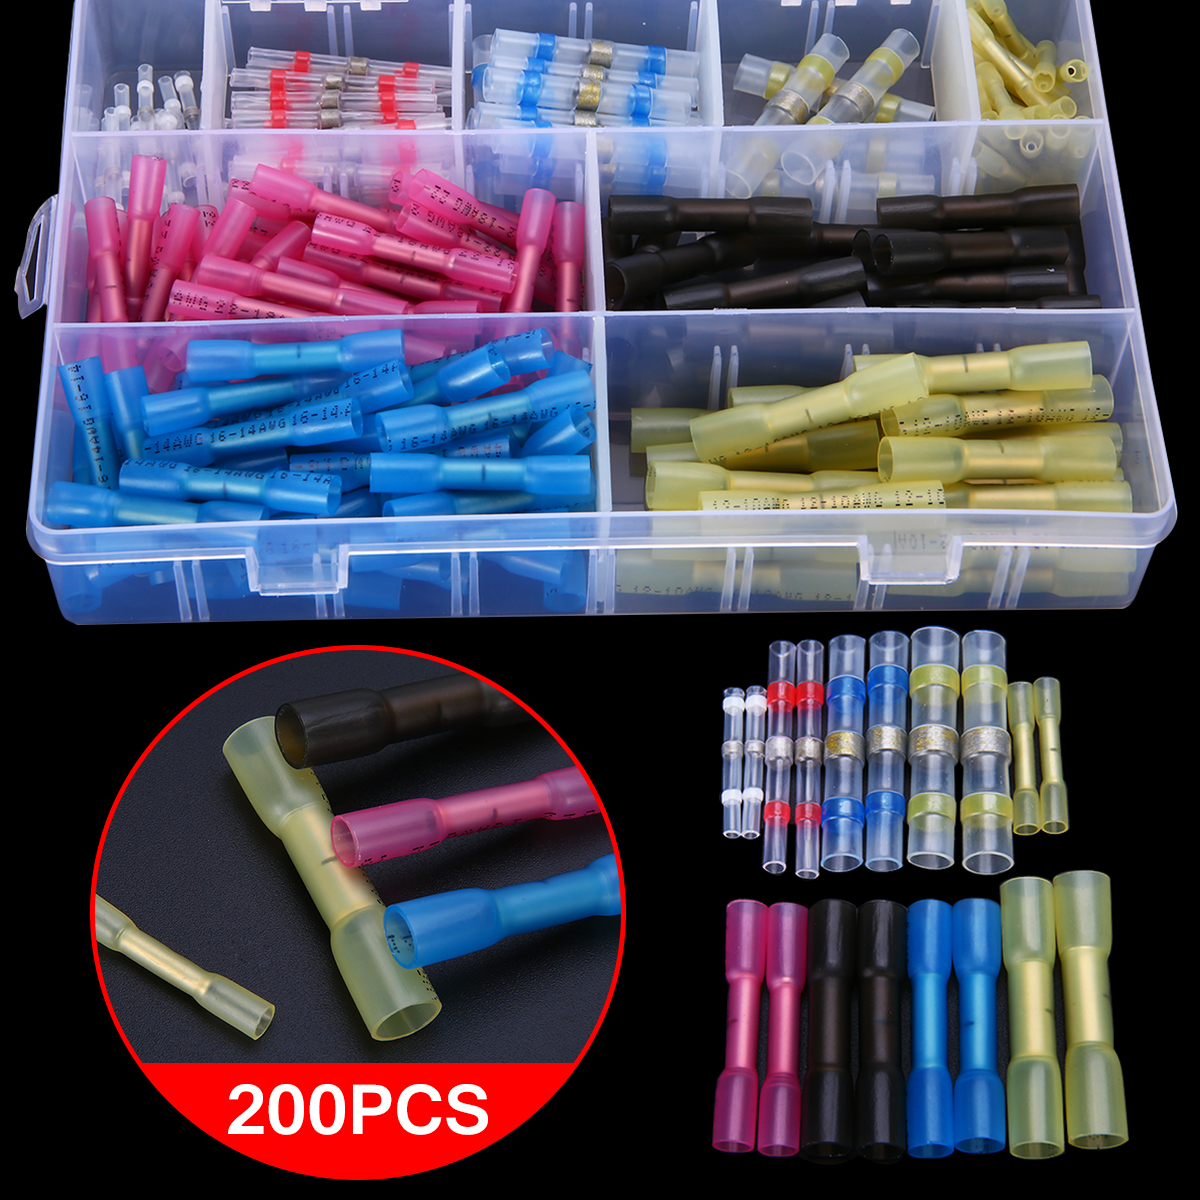 200pcs New Heat Shrink Terminals Insulated Heat Shrink Solder Connectors Wire Butt Connector 200pcs mixed heat shrink terminals solder sleeve tube electrical insulated butt connectors with box 16 14awg kit